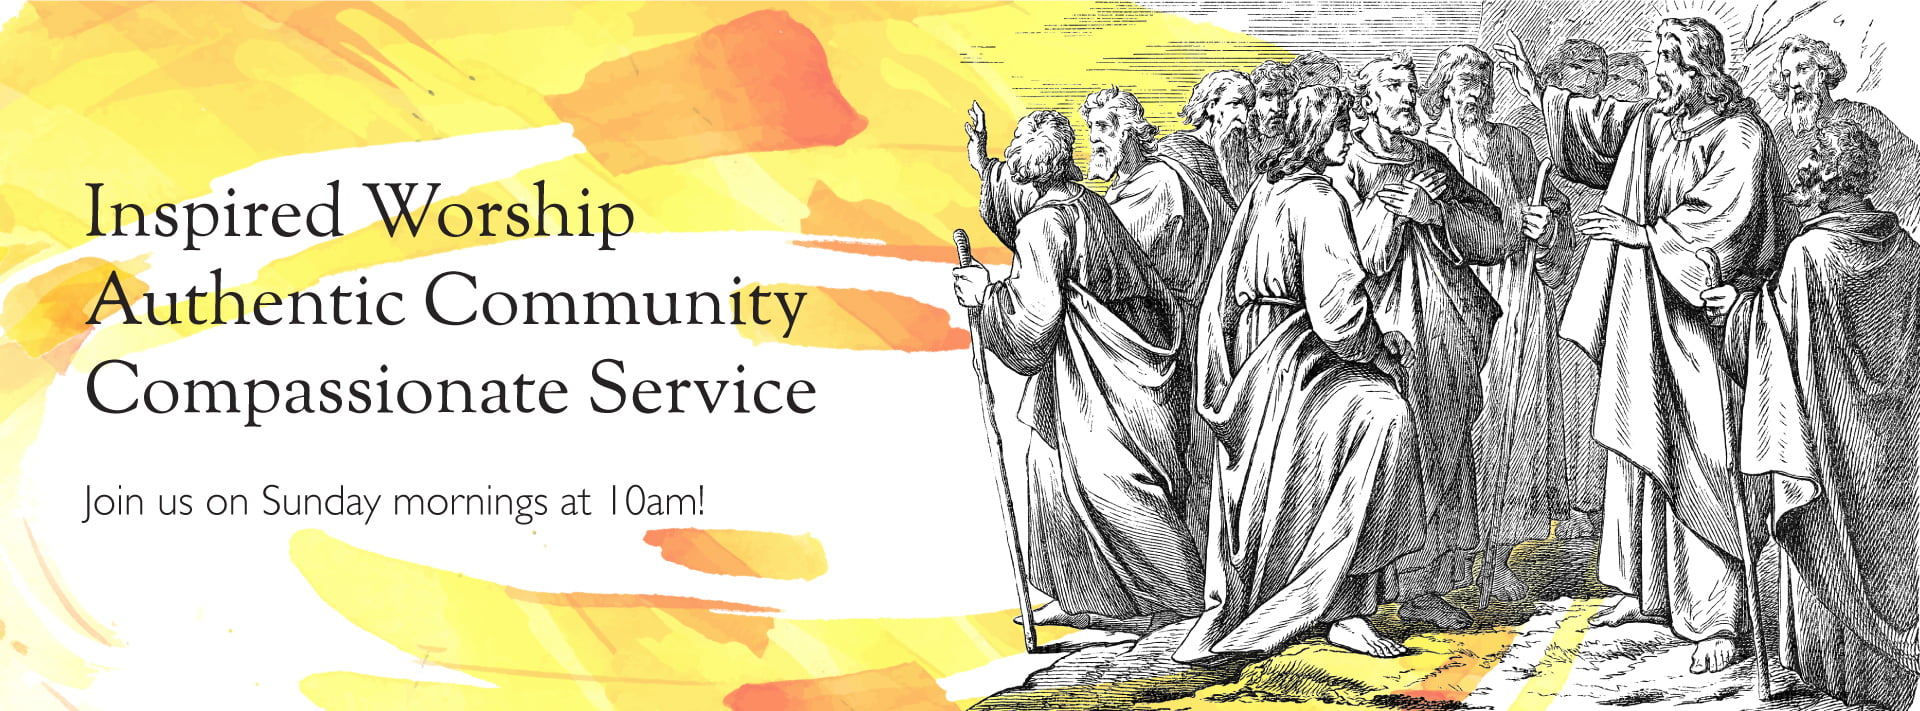 Join us at 10am on Sundays!